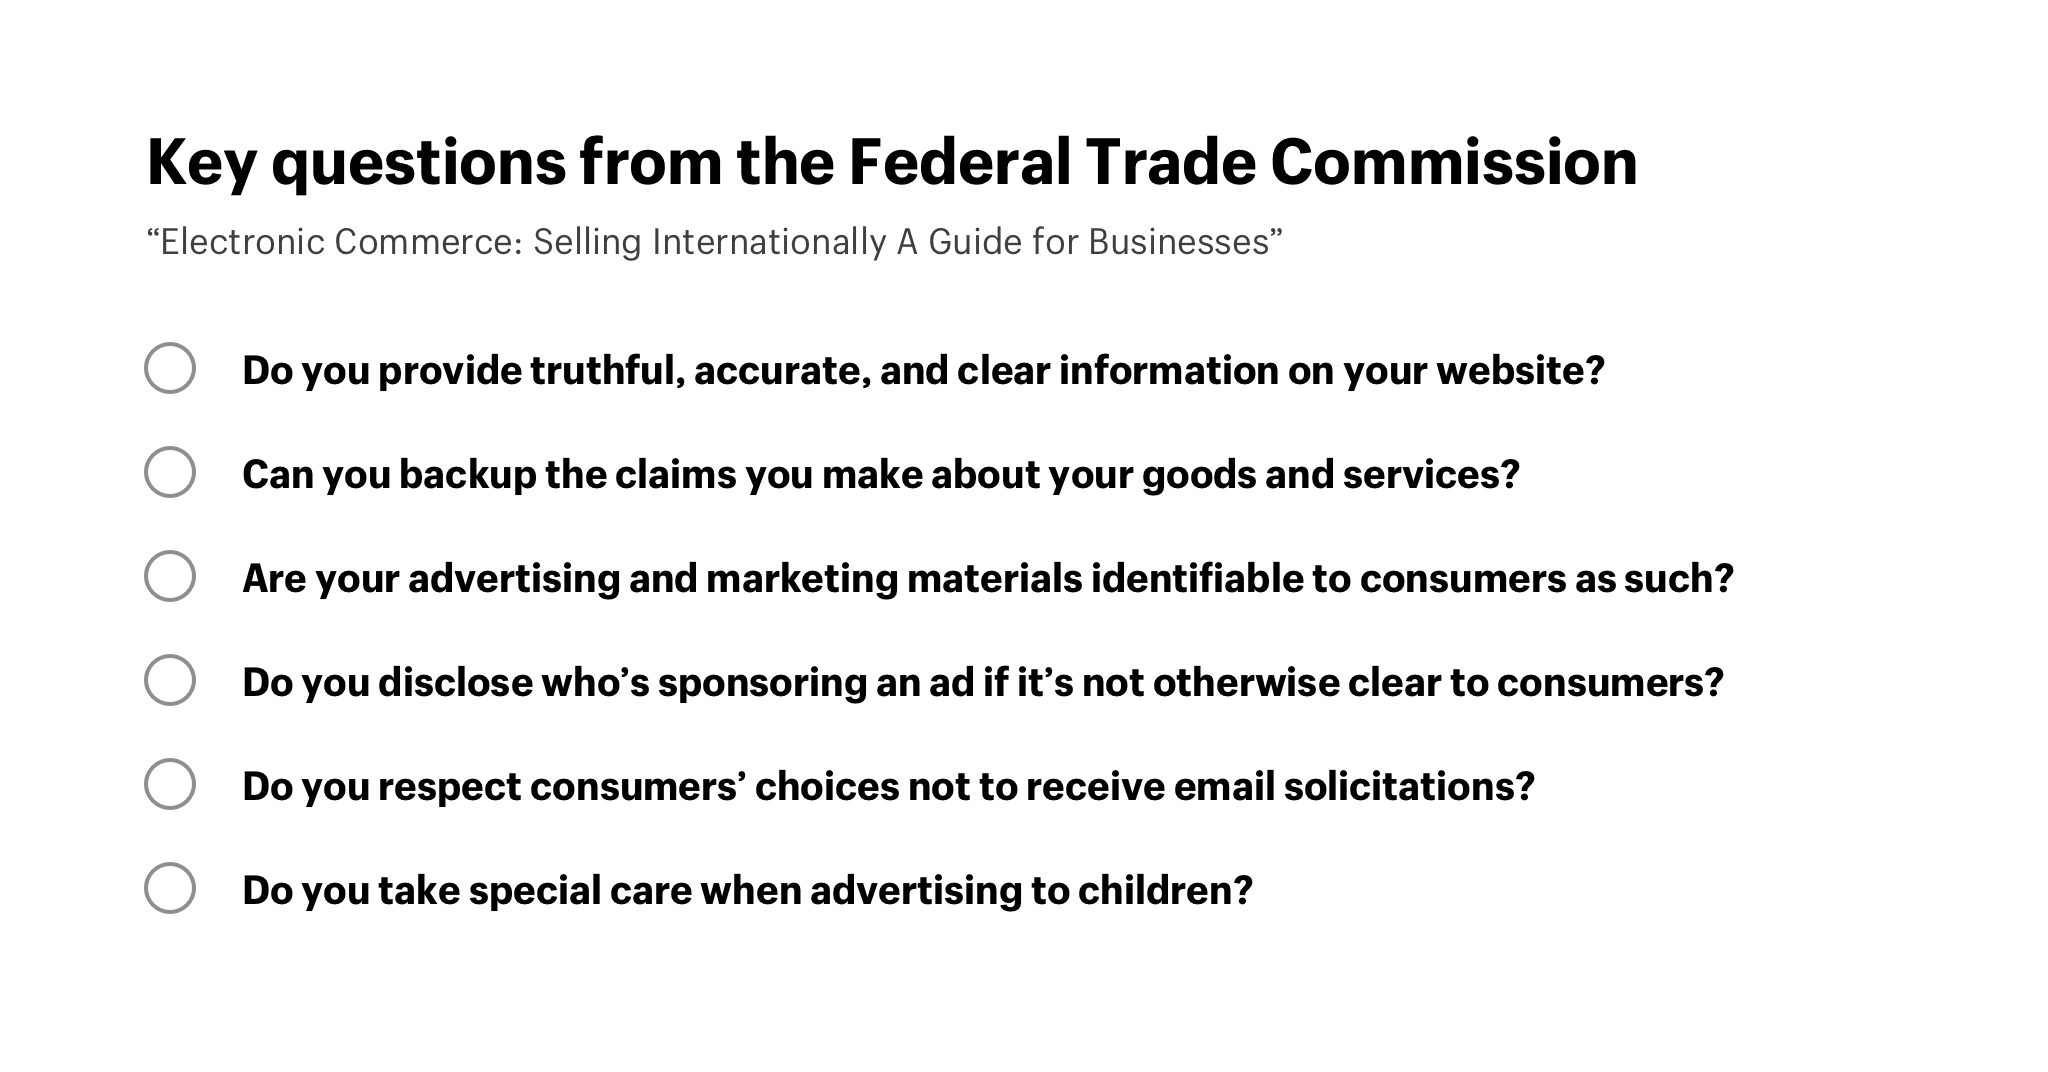 Key questions from the Federal Trade Commission